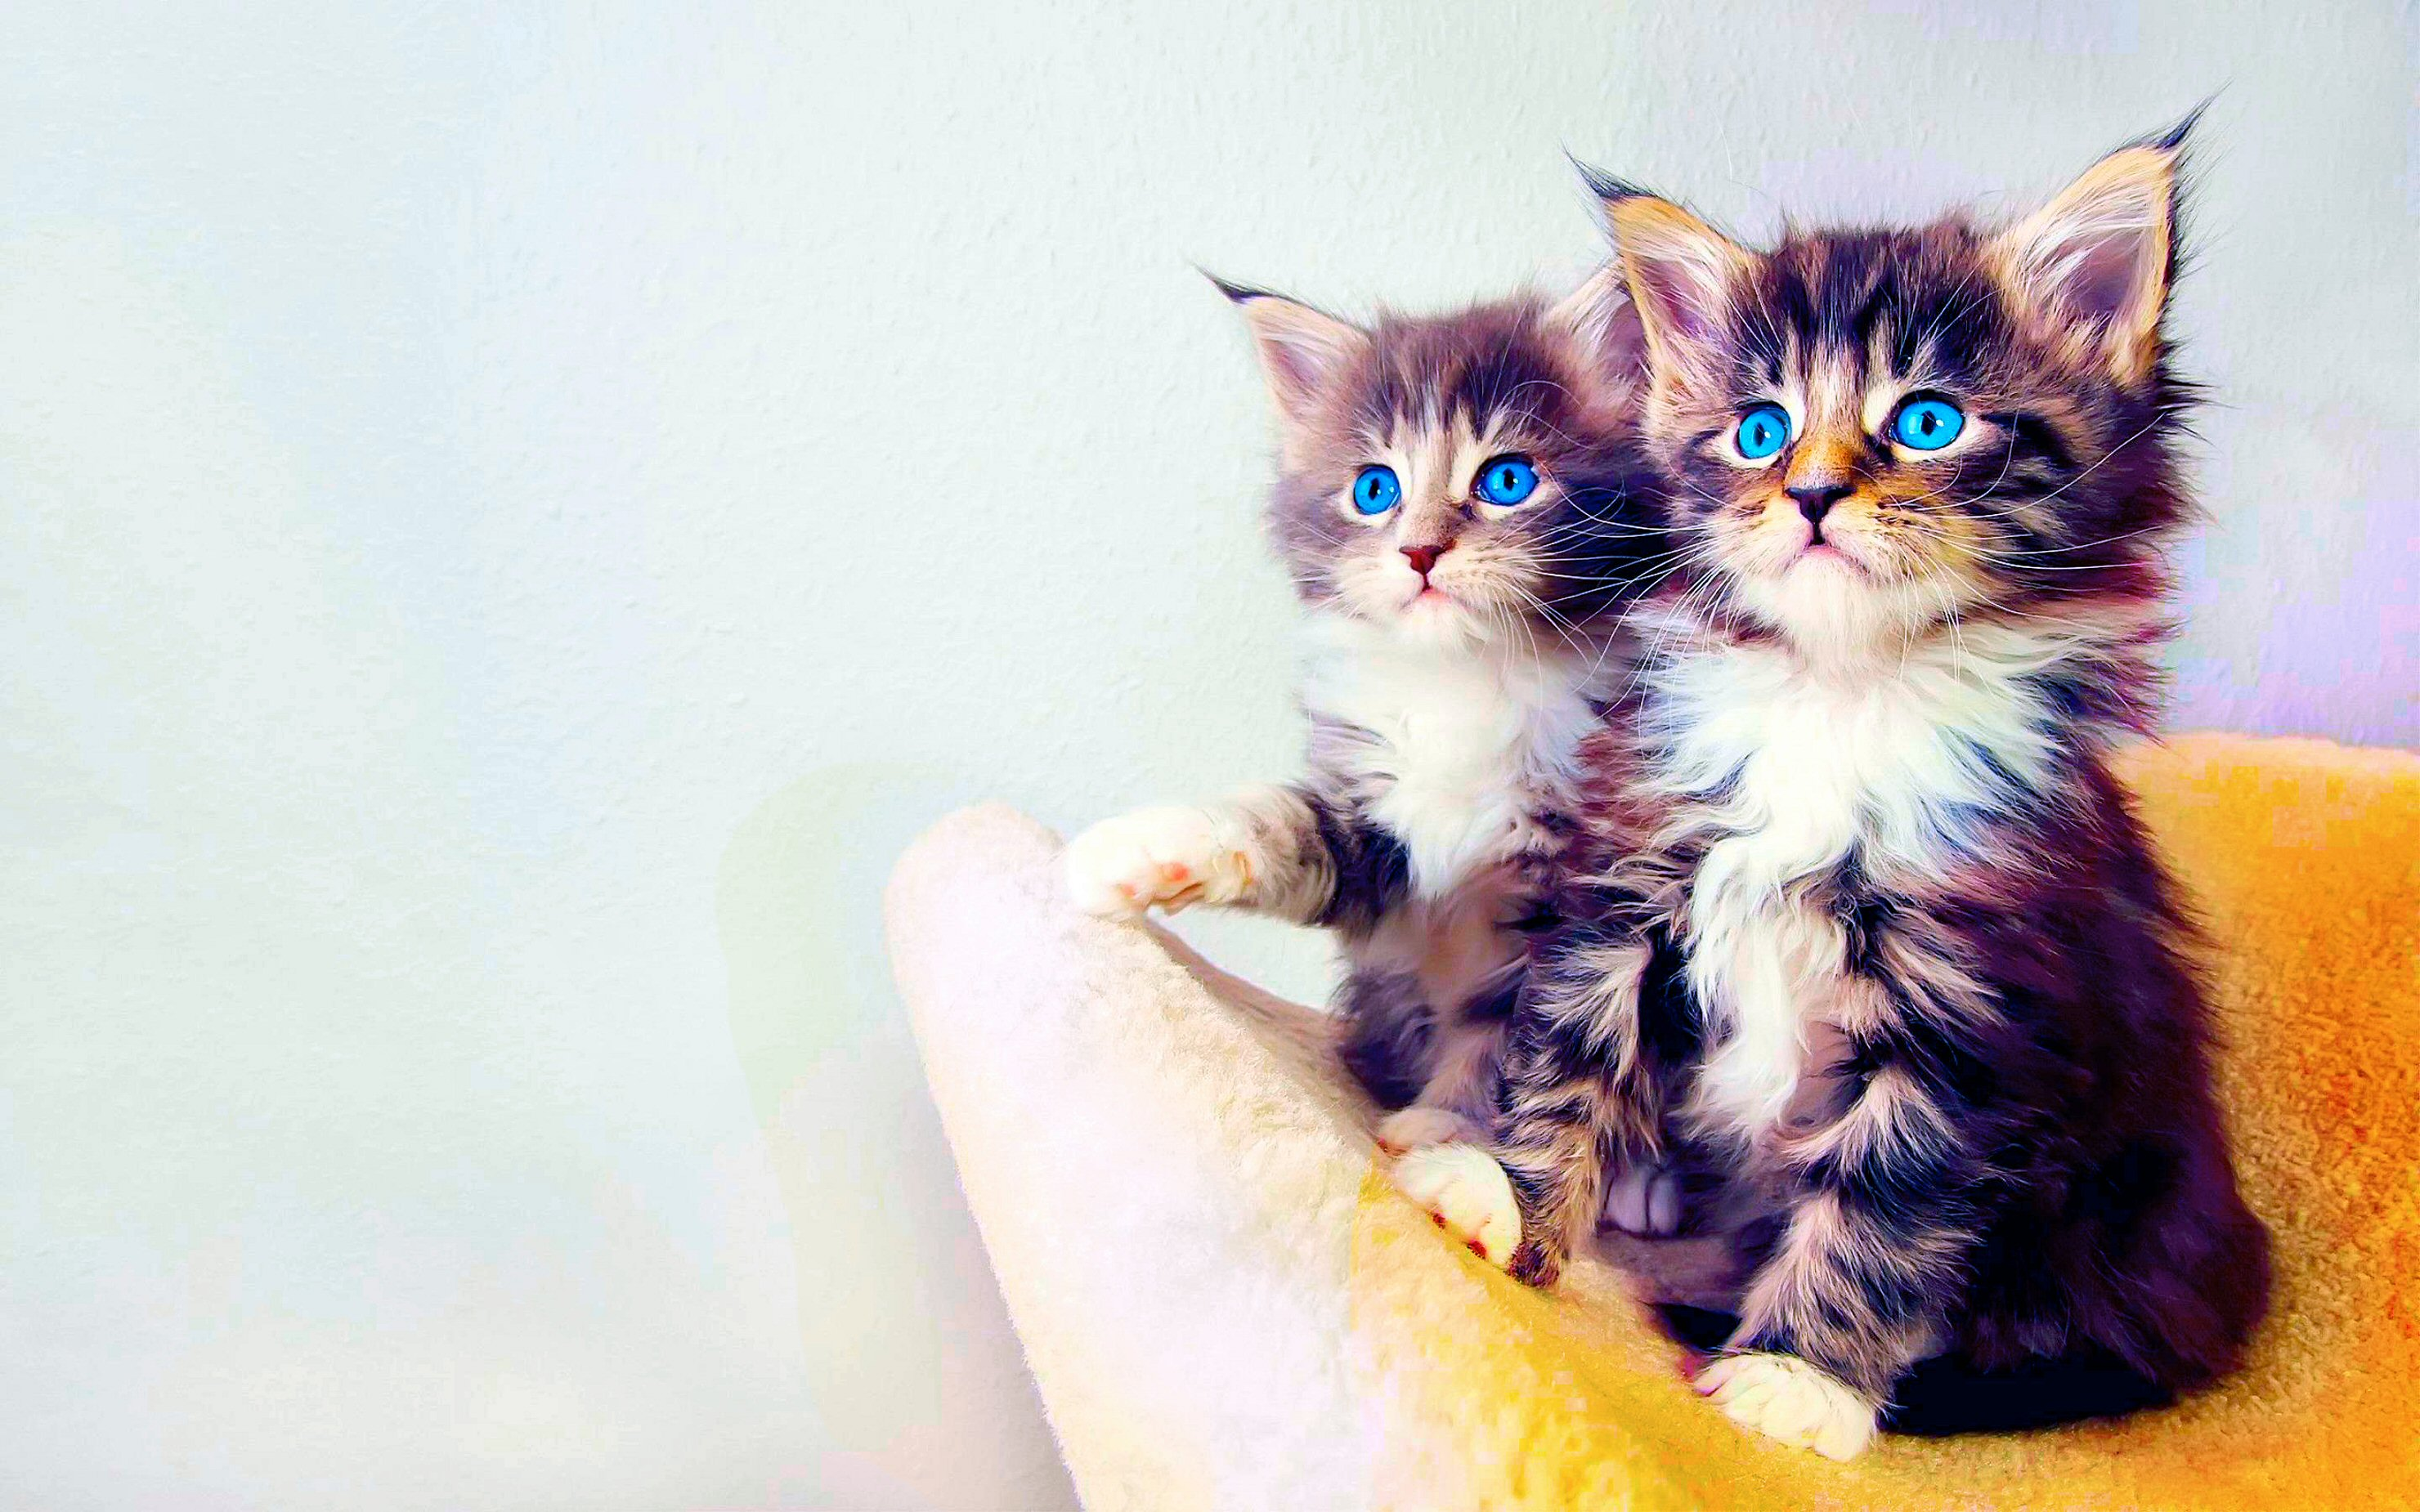 6205 Cat HD Wallpapers   Backgrounds - Wallpaper Abyss